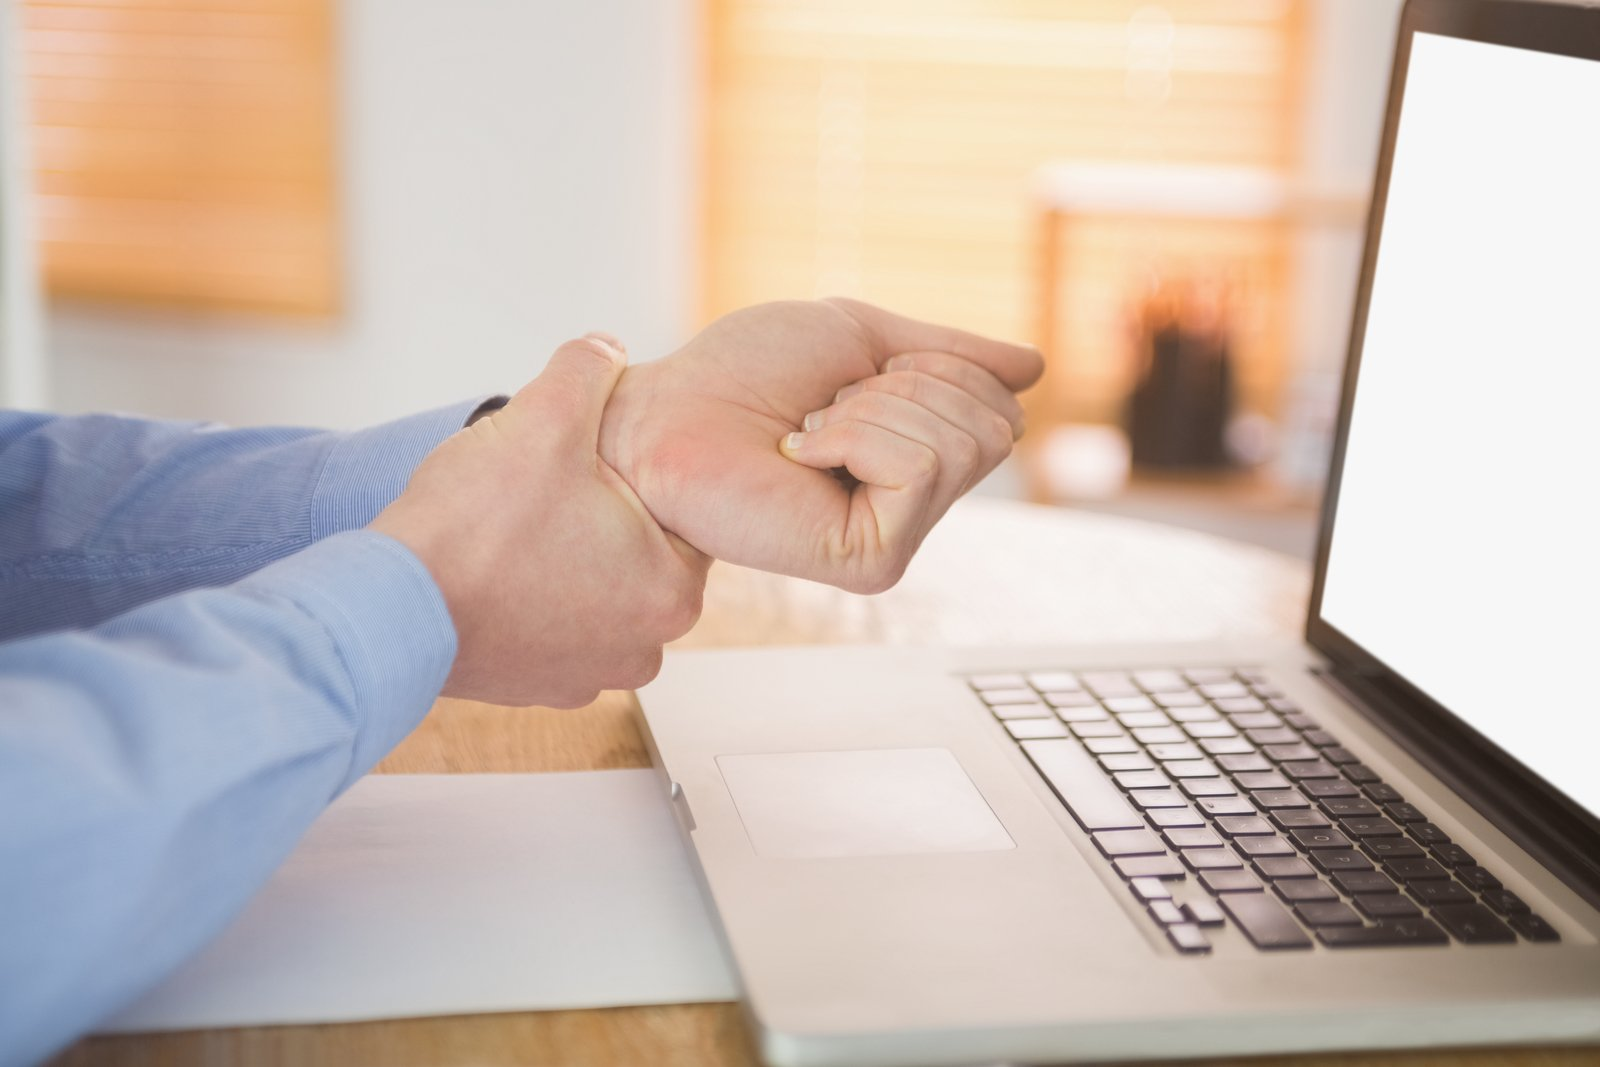 Georgia Workers Compensation for Carpal Tunnel Syndrome (CTS)